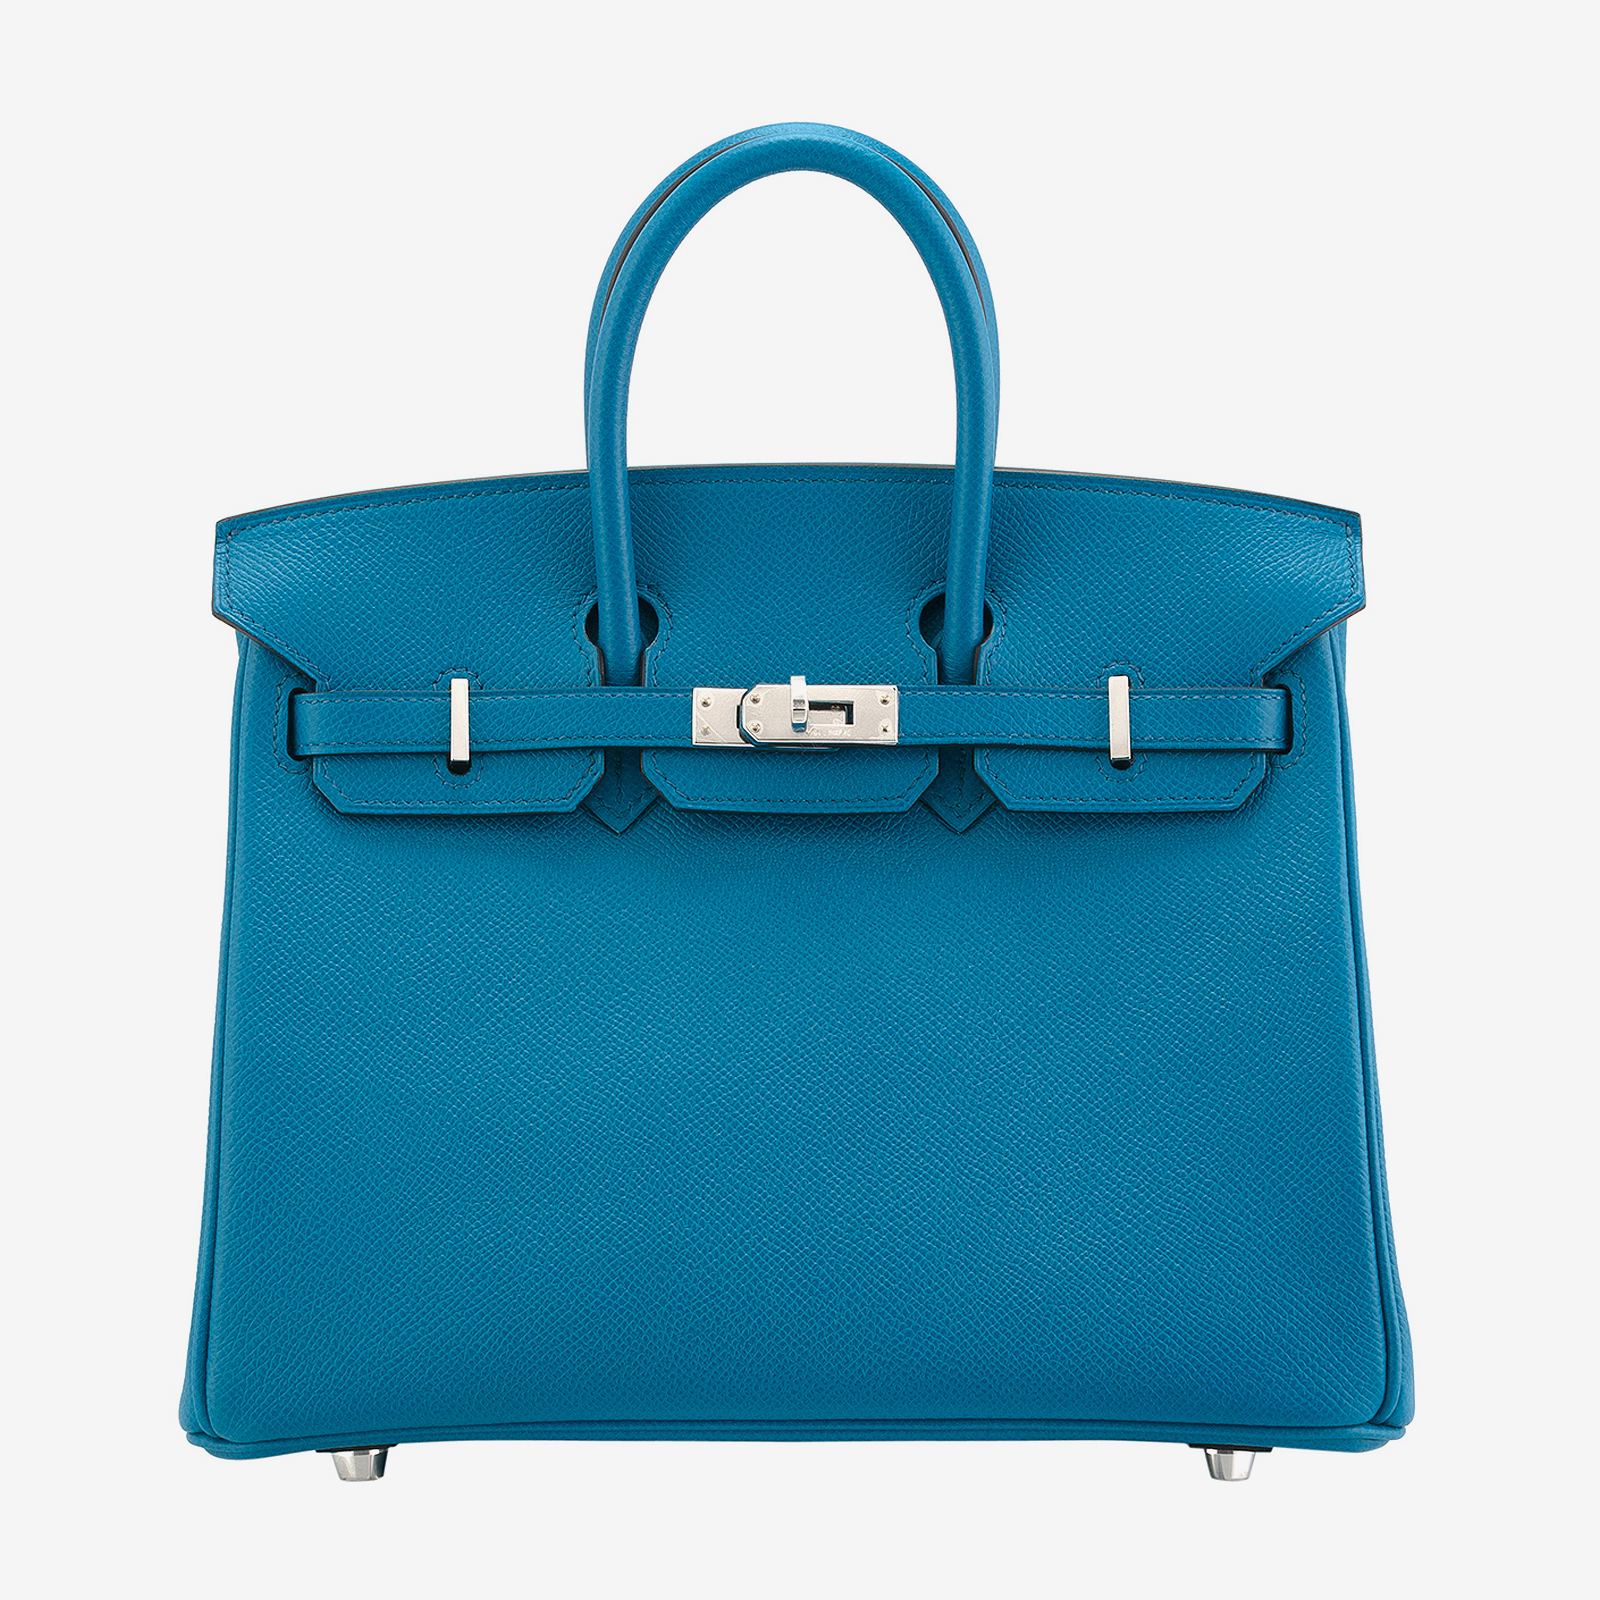 Birkin bag product picture